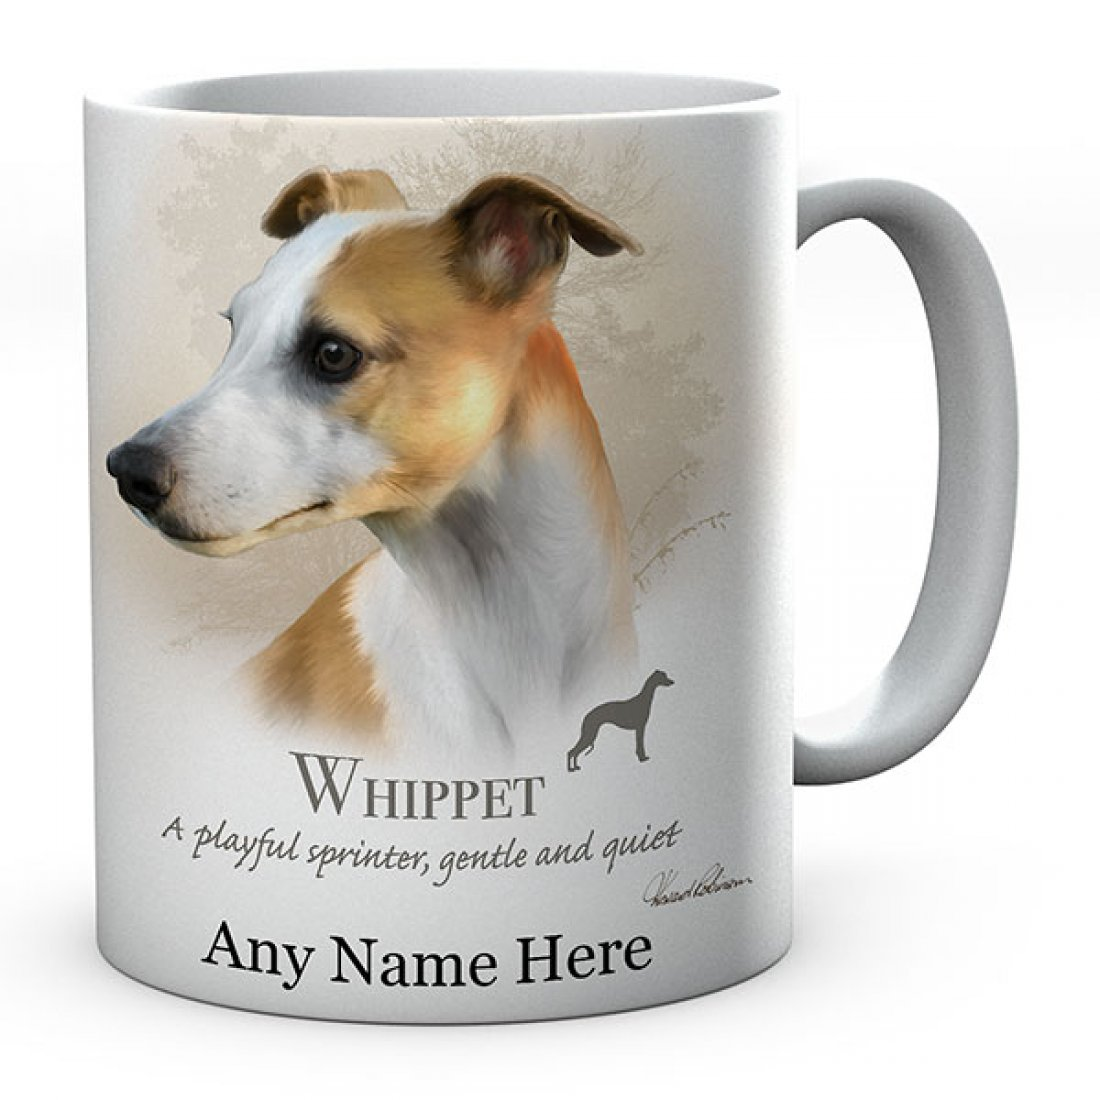 Personalised Whippet Dog Mug